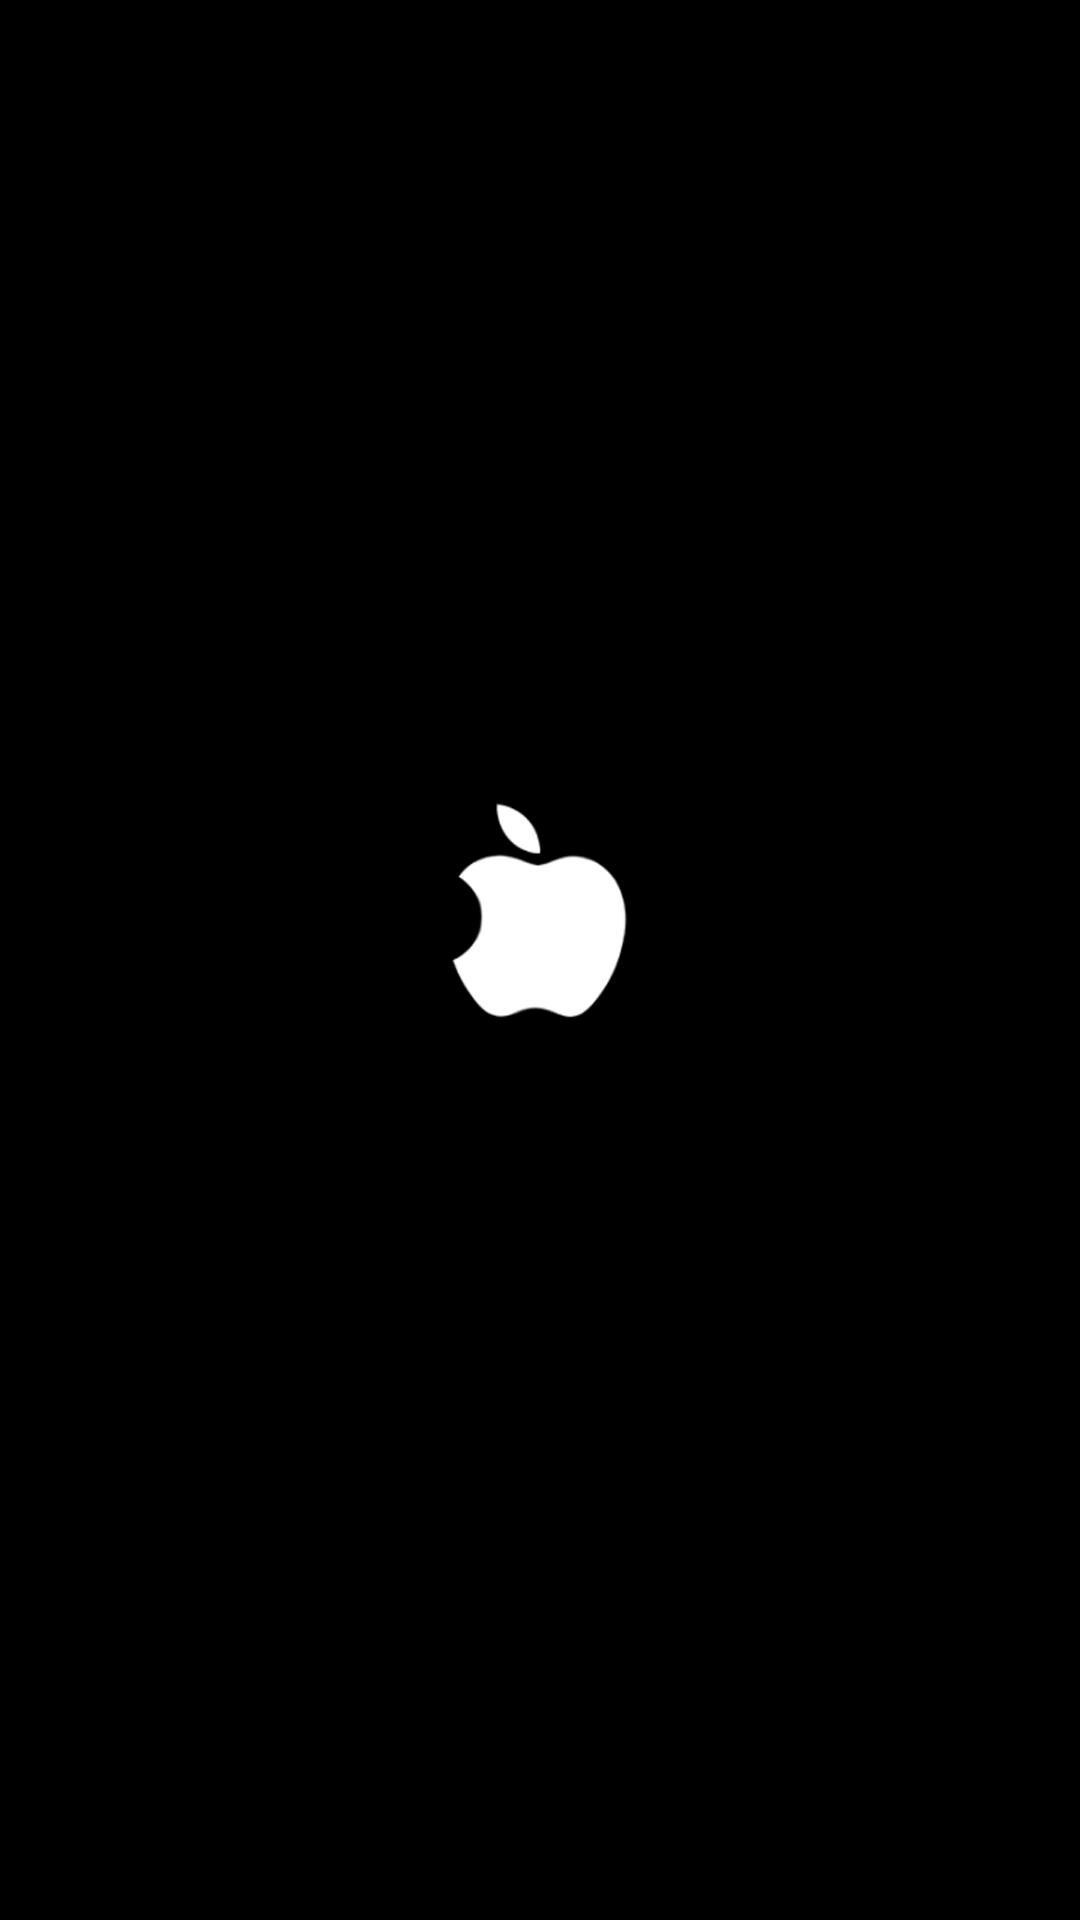 Res: 1080x1920, Wallpaper Black Apple For iPhone 7 resolution